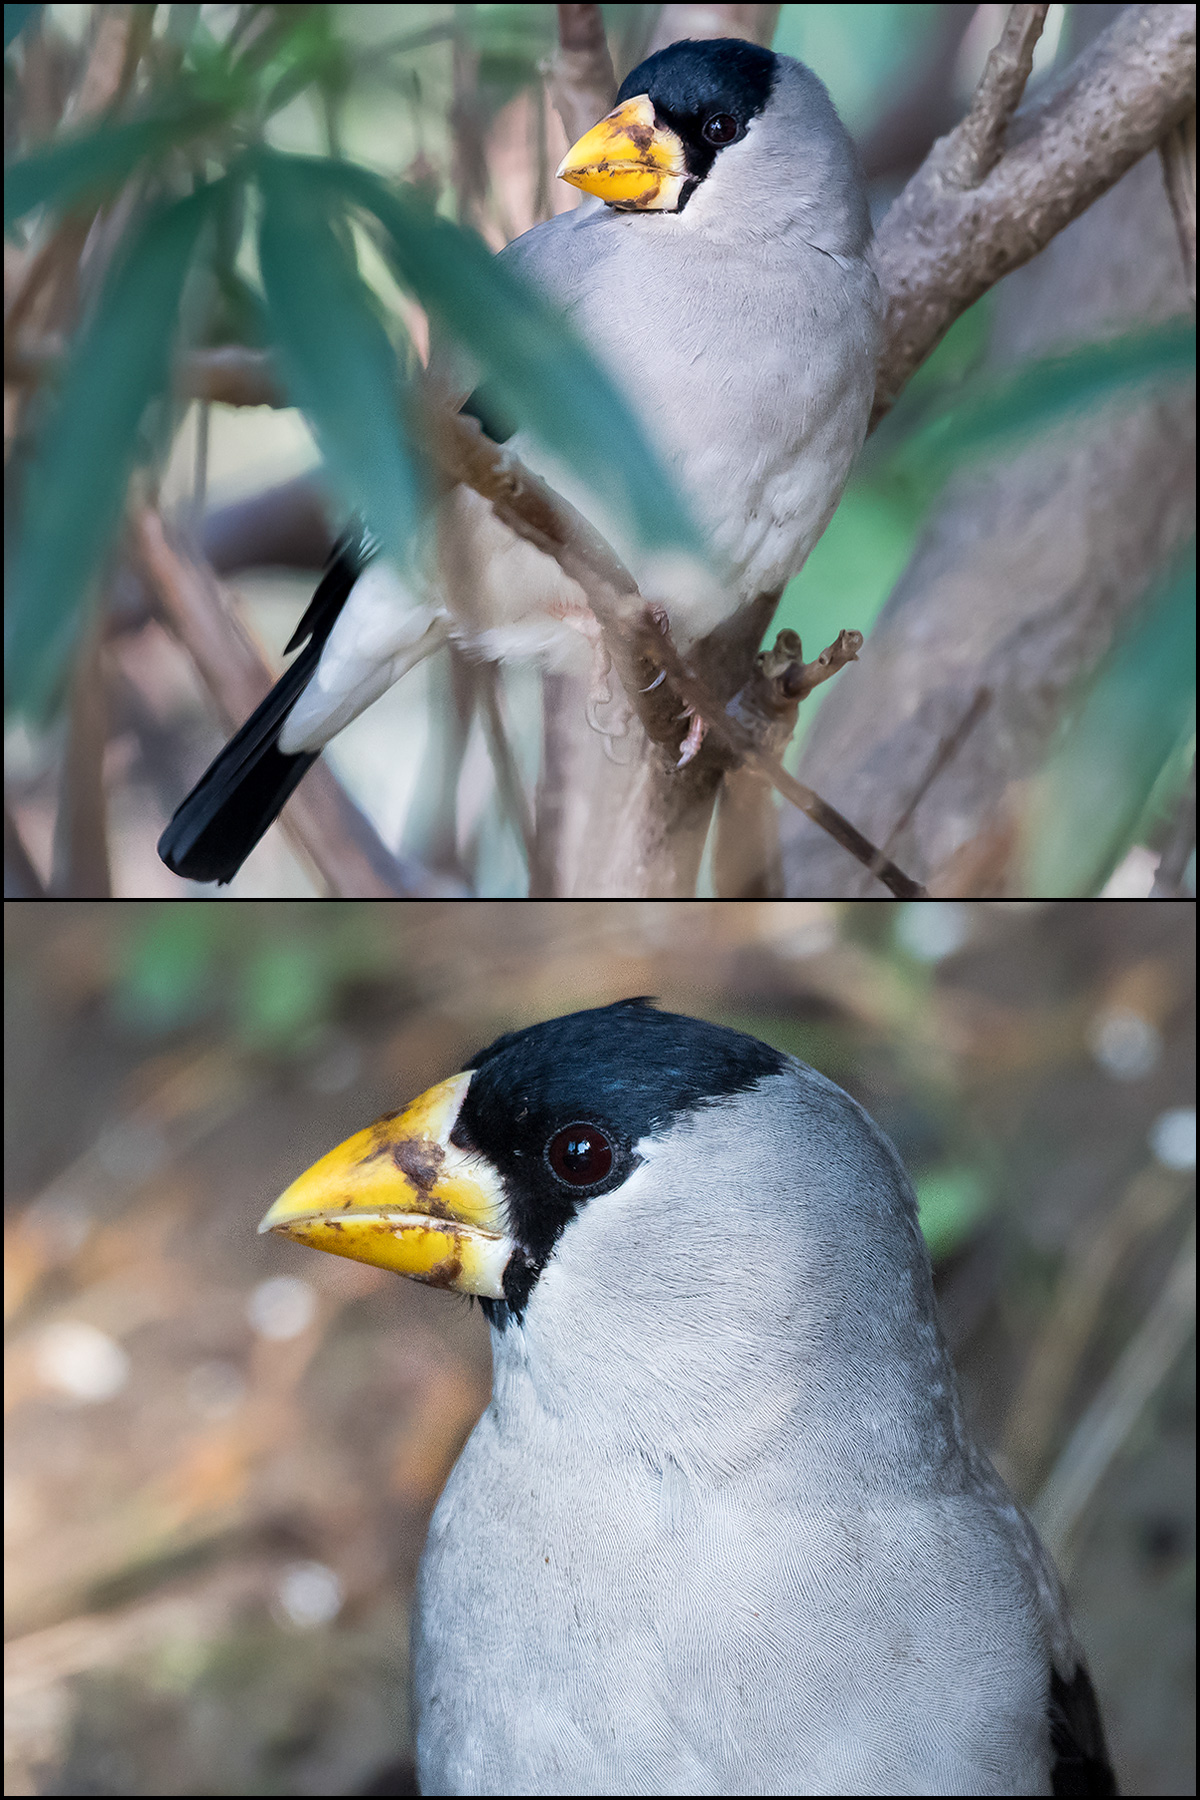 Japanese Grosbeak, Nanhui, 24 Nov. 2016. Photo by Kai Pflug.